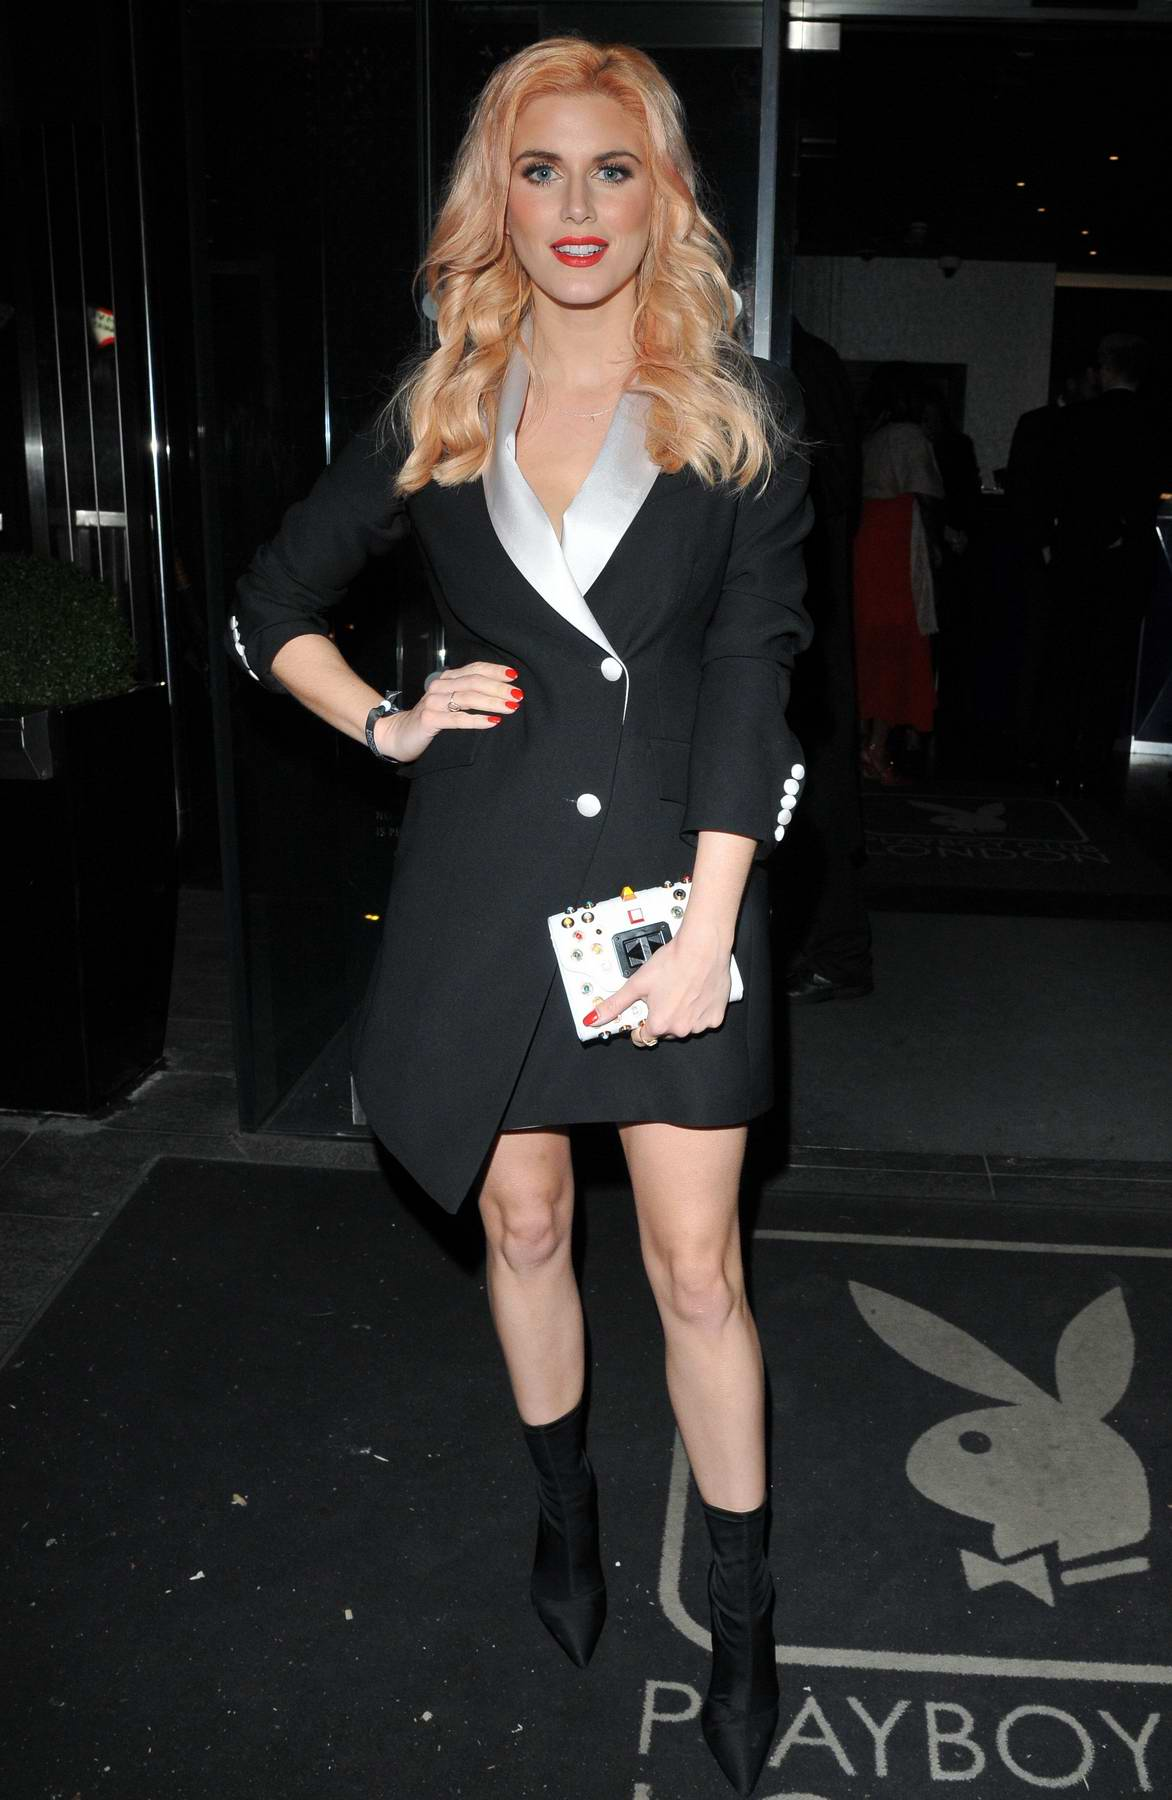 Ashley James attends The White Managmeant Party at Mahiki in London